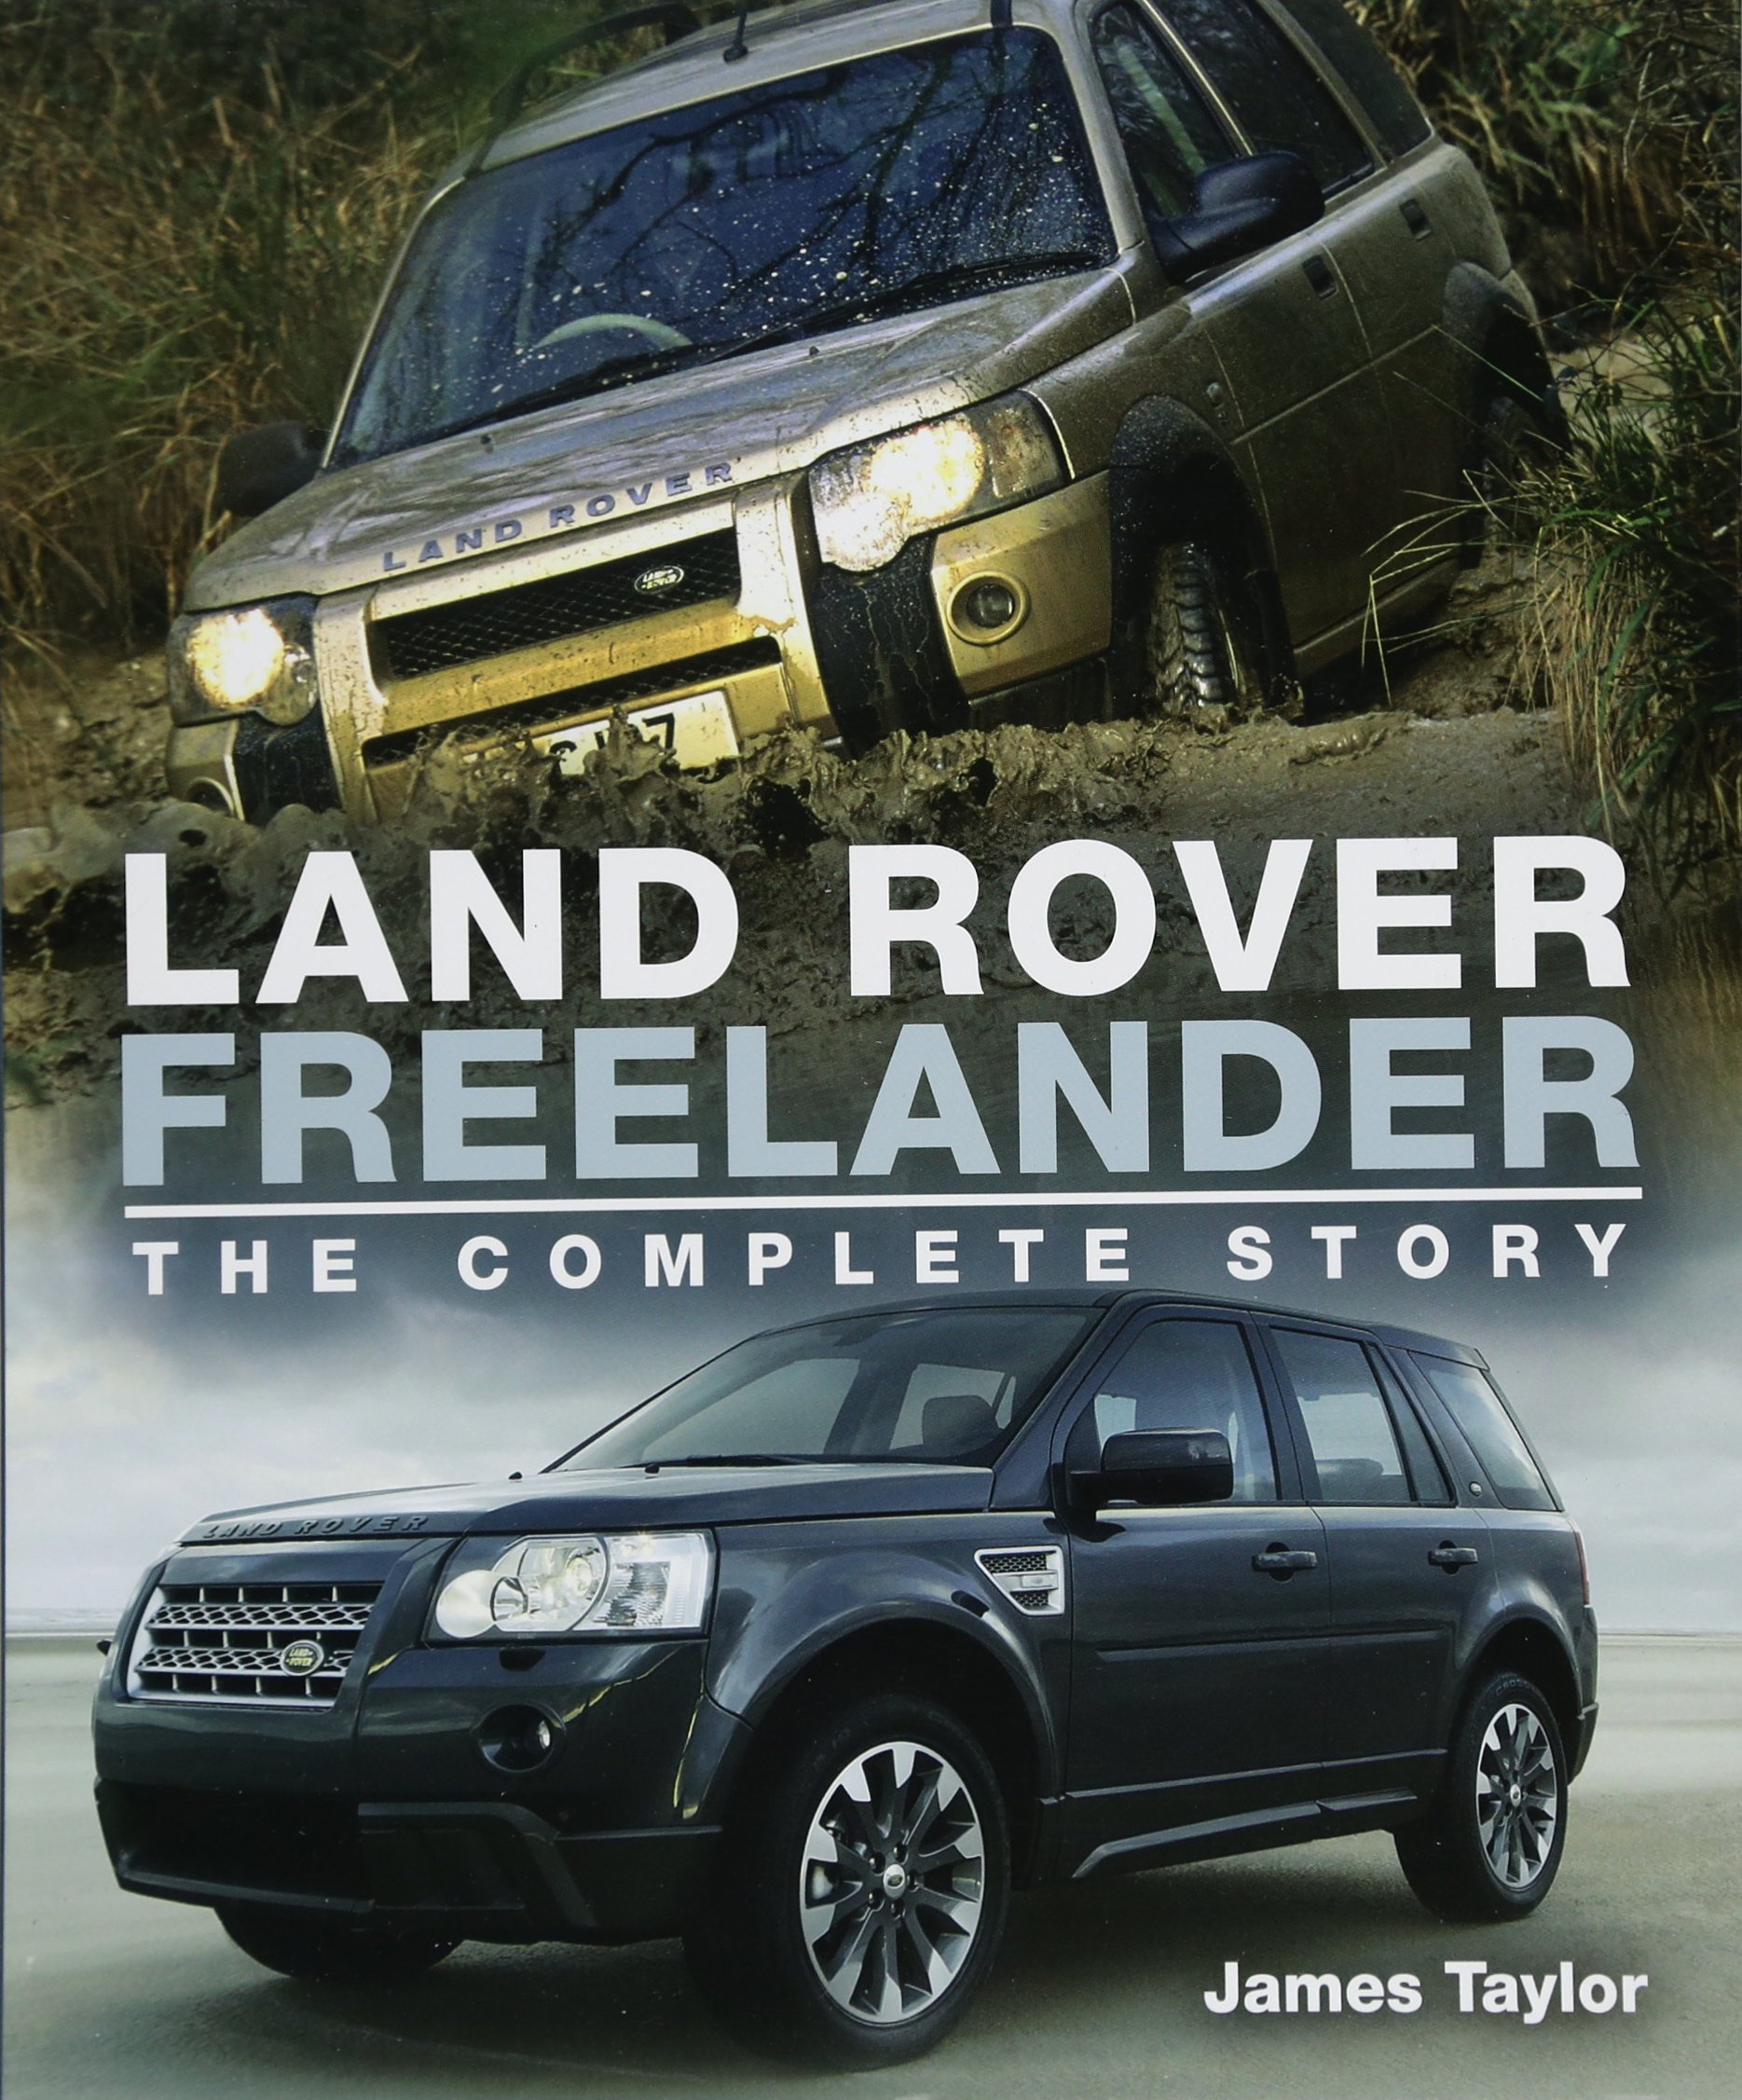 van land car free discovery news disco vat for rover the landrover revealed commercial cheap